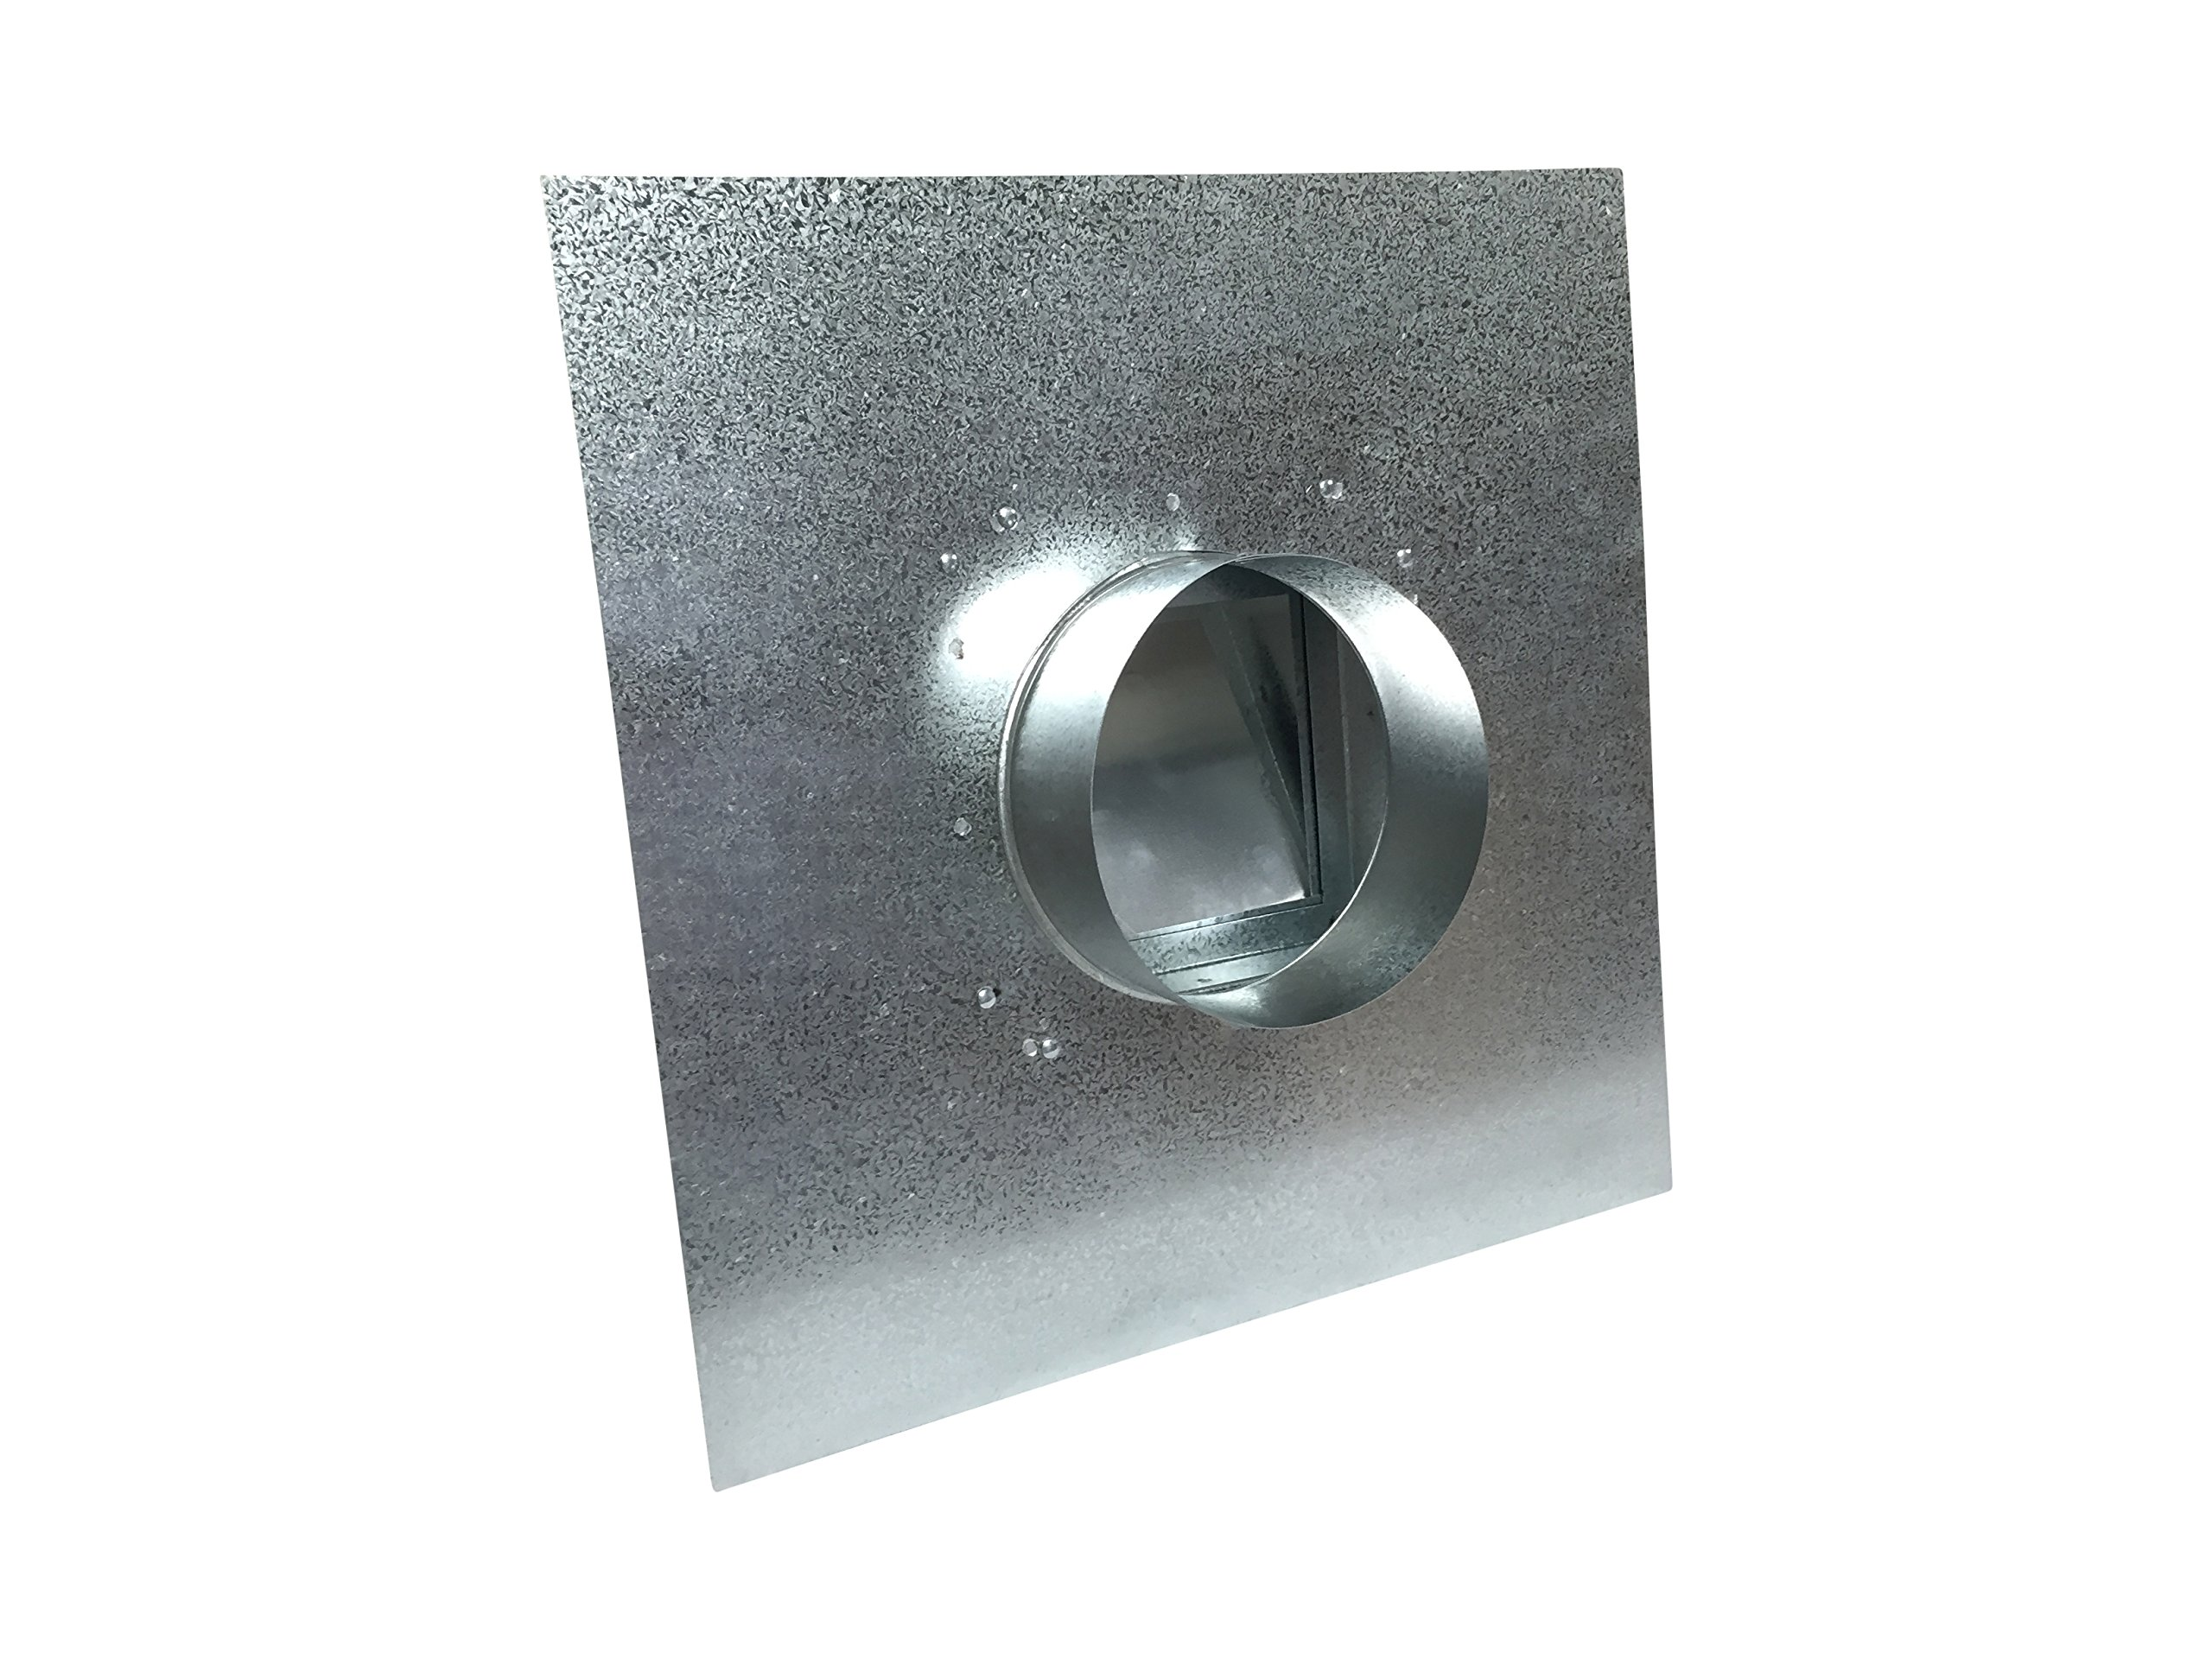 5 Inch Roof Vent Hood Cap Galvanized Damper & Screen - Vent Works by Vent Works (Image #3)